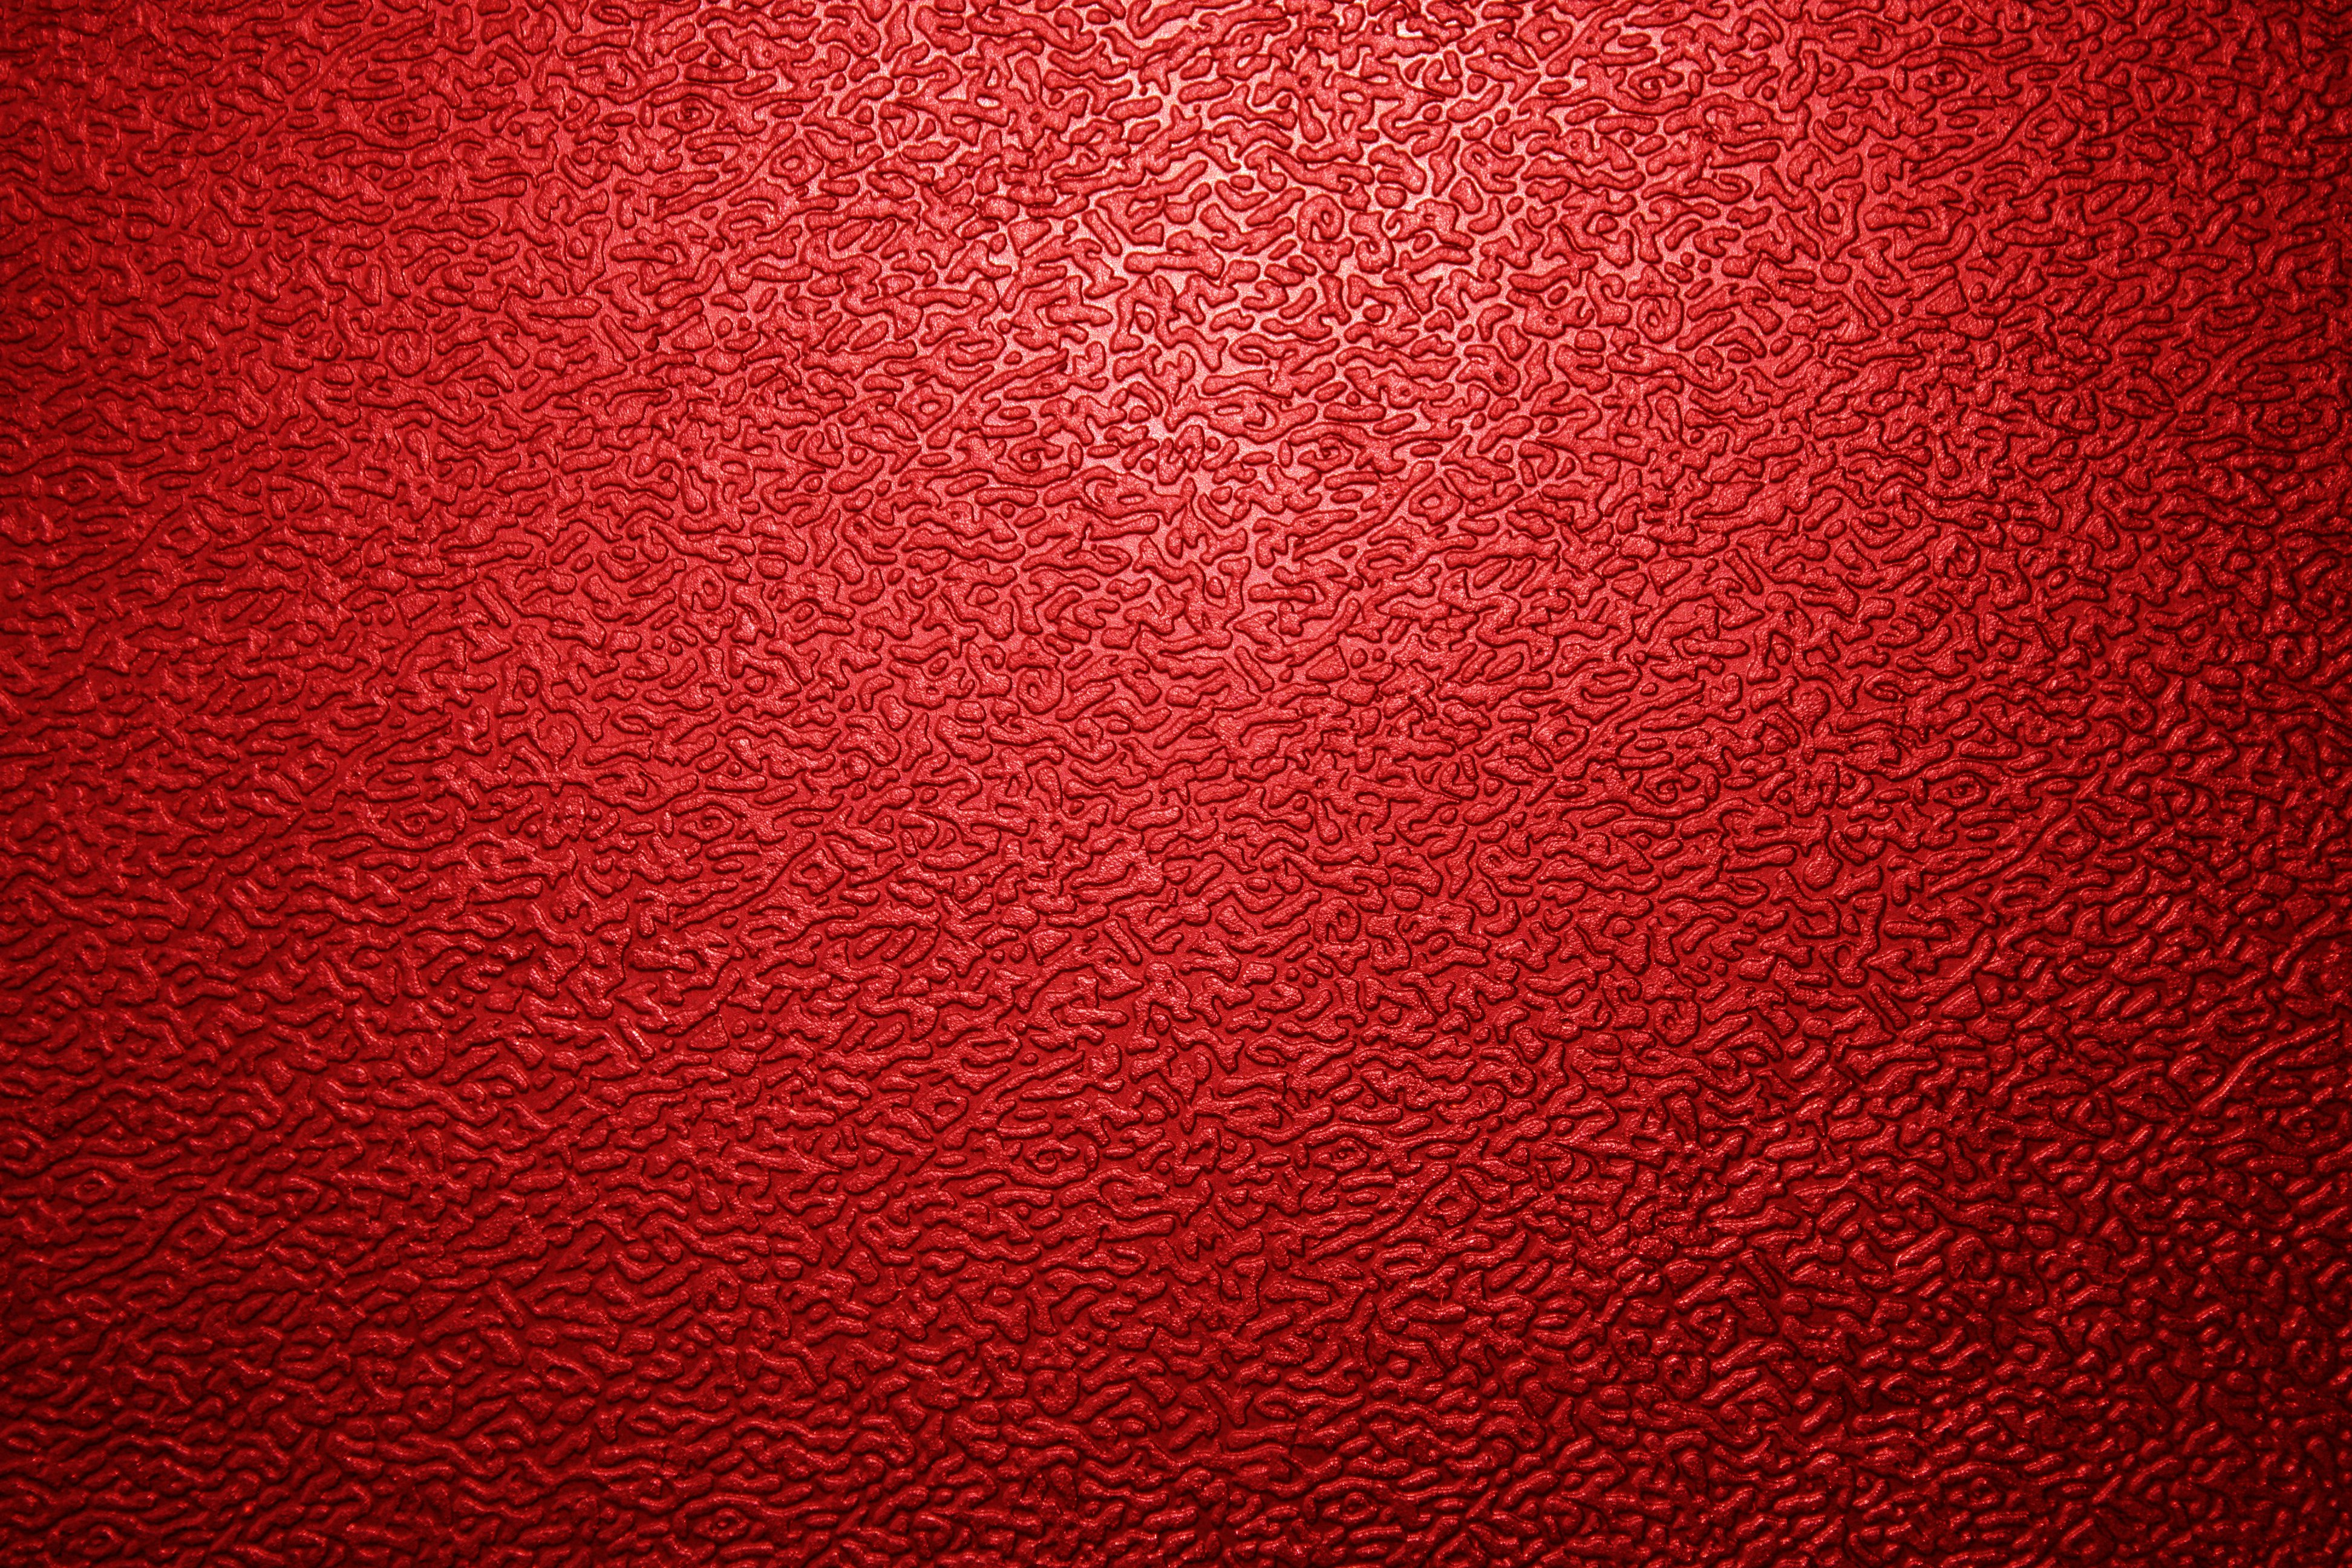 red backgrounds download picture